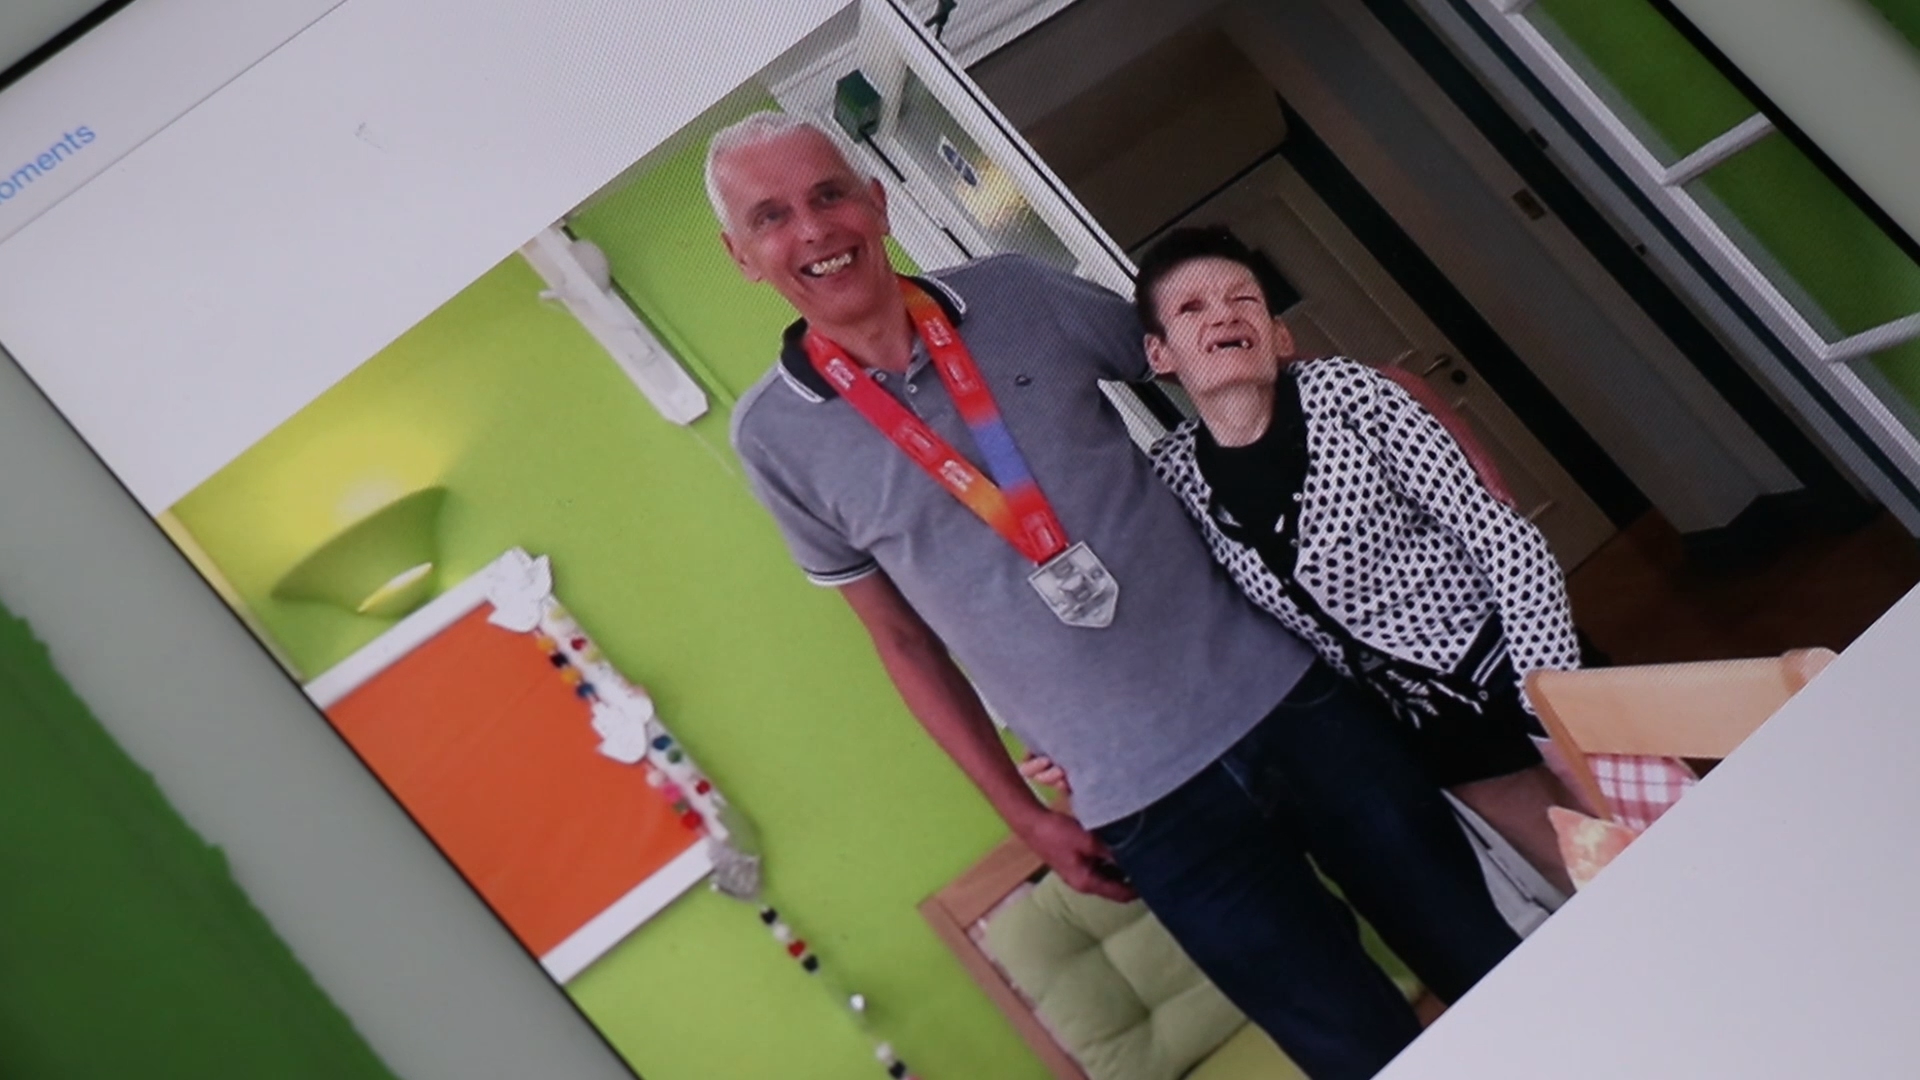 Ray is 69 and has just completed his 19th Marathon for See Ability Denecroft a home in Guildford Town Centre that supports 6 adults with sight loss